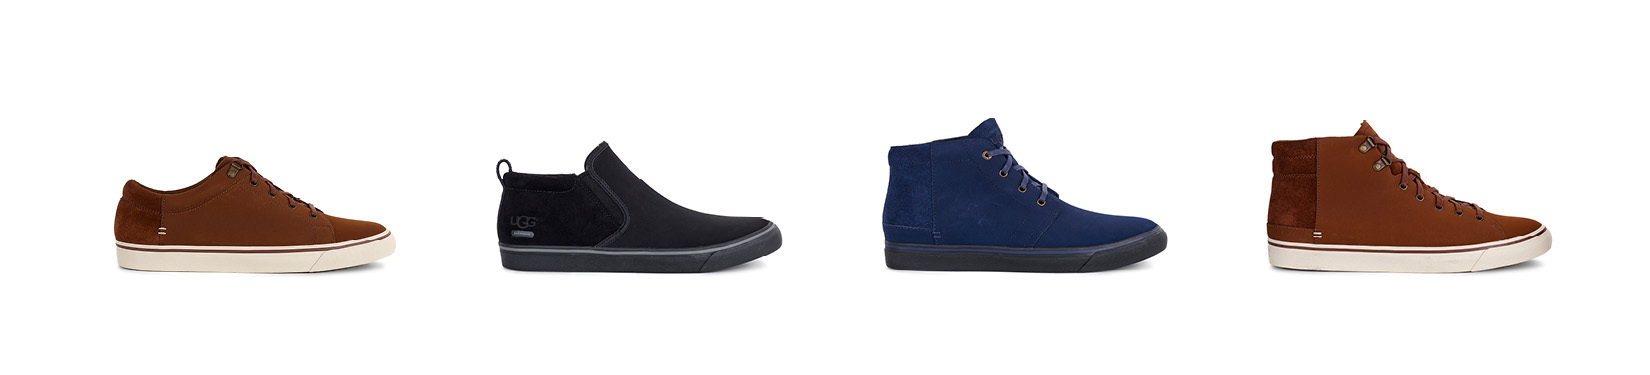 d79ee864e53 UGG for Men Makes a Splash with Waterproof Sneakers | Business Wire